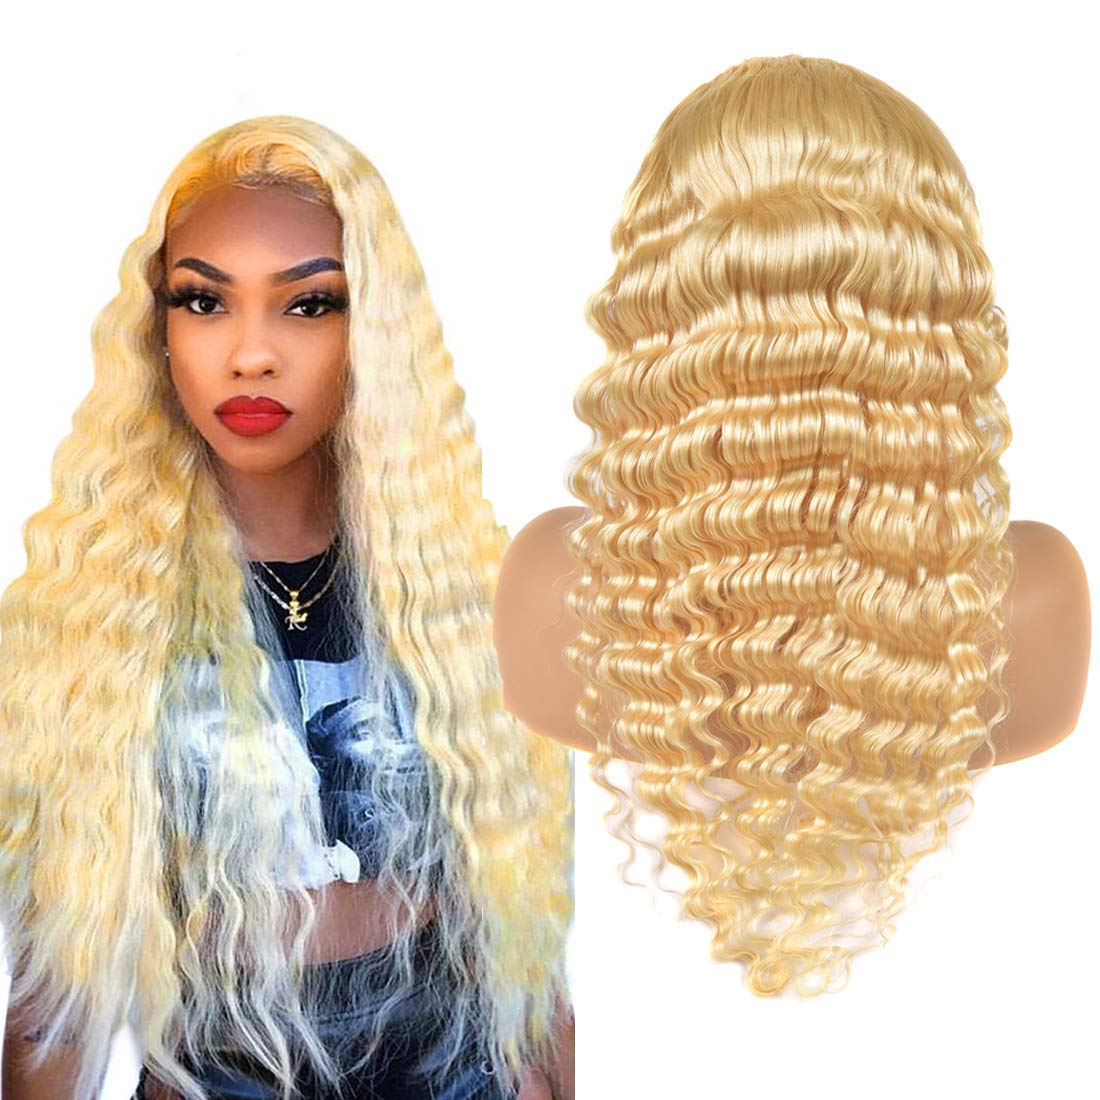 13x6 613 Lace Front Wig Deep Wave Glueless Wig Deep Free Part Pre Plucked Wigs With Baby Hair 130 Density Swiss Lace Real Hair Wig Wet And Wavy Wig Cheap Wigs For Black Women 18 Inch